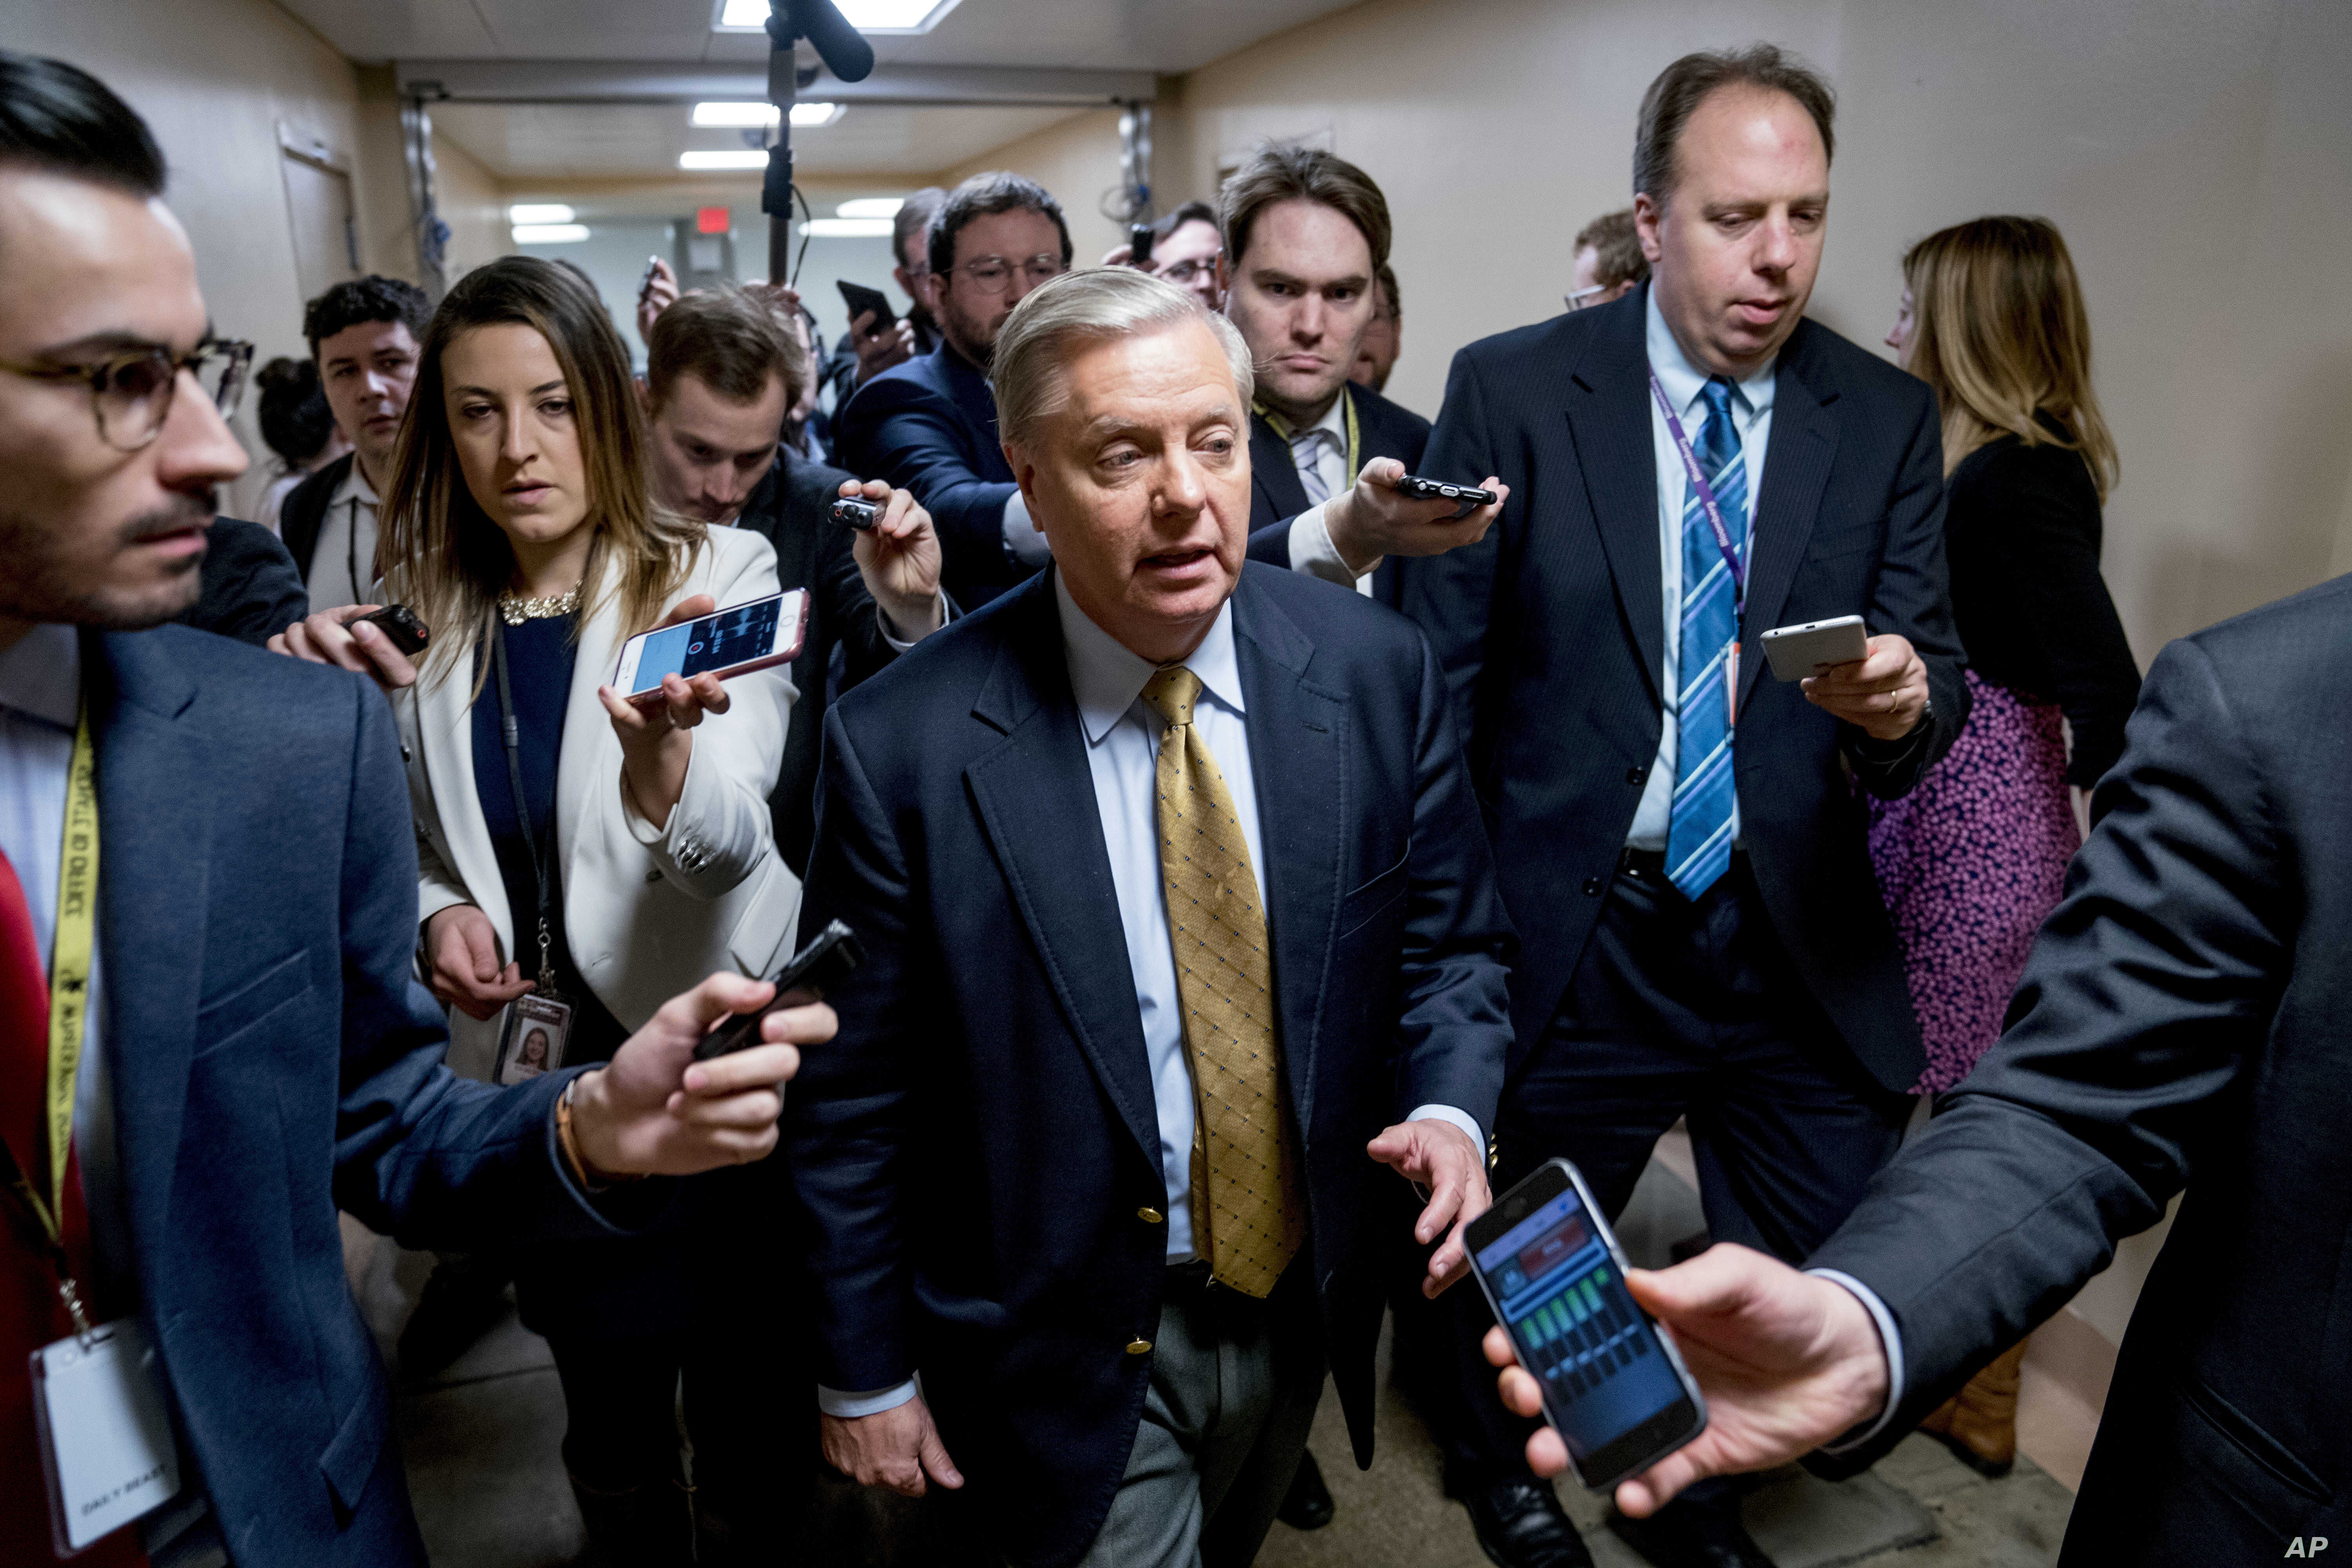 Sen. Lindsey Graham, R-S.C., speaks to reporters as he walks toward the Senate as Congress moves closer to the funding deadline to avoid a government shutdown on Capitol Hill in Washington, Jan. 18, 2018.